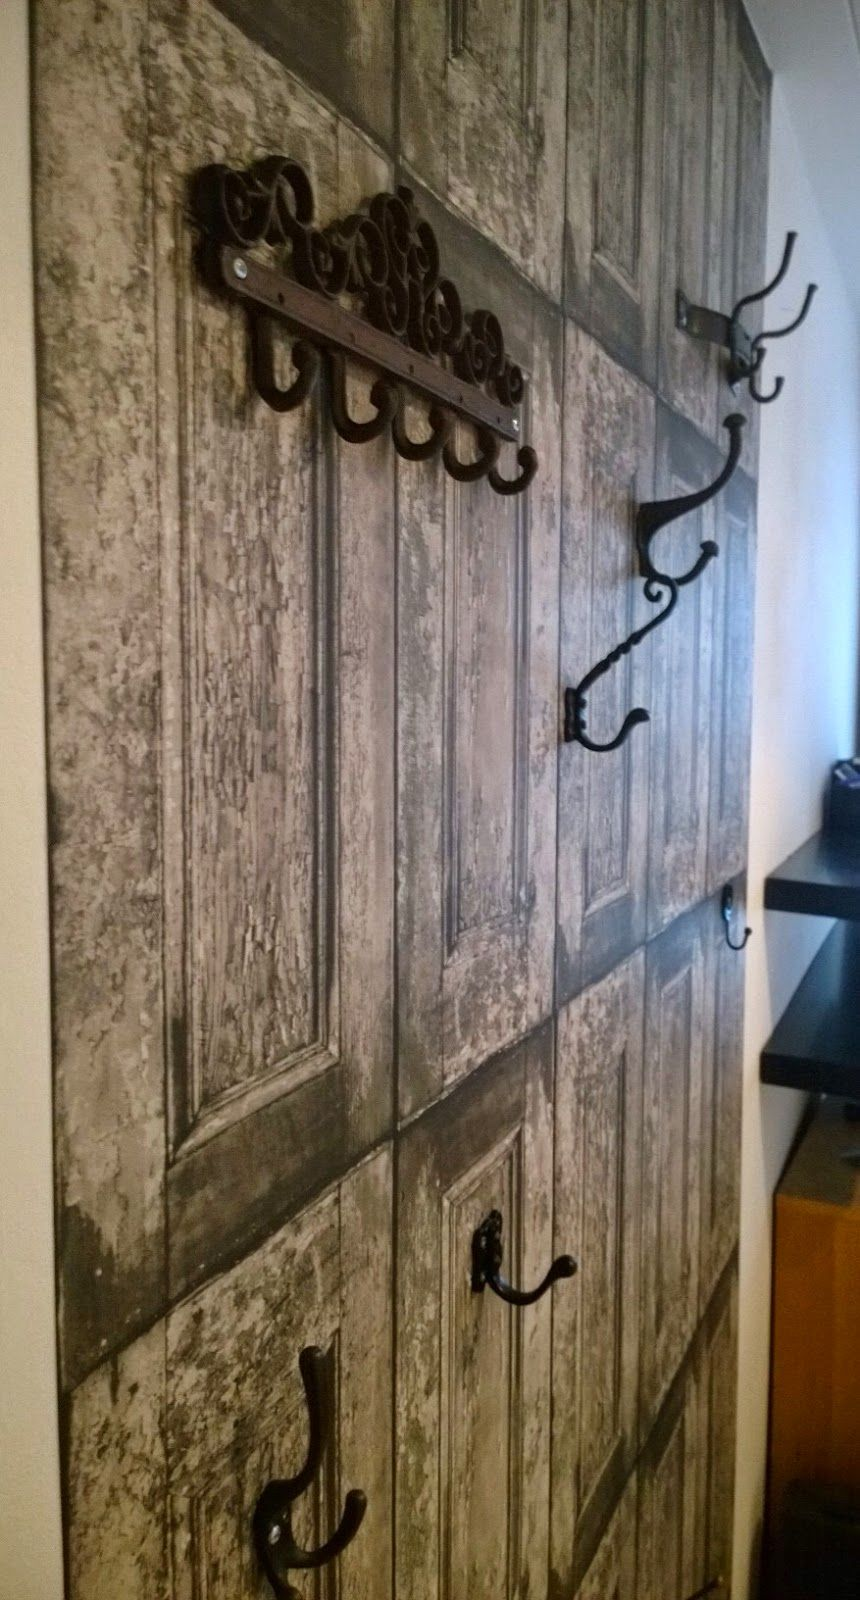 Rustic coat rack from wallpaper and different metal hooks.